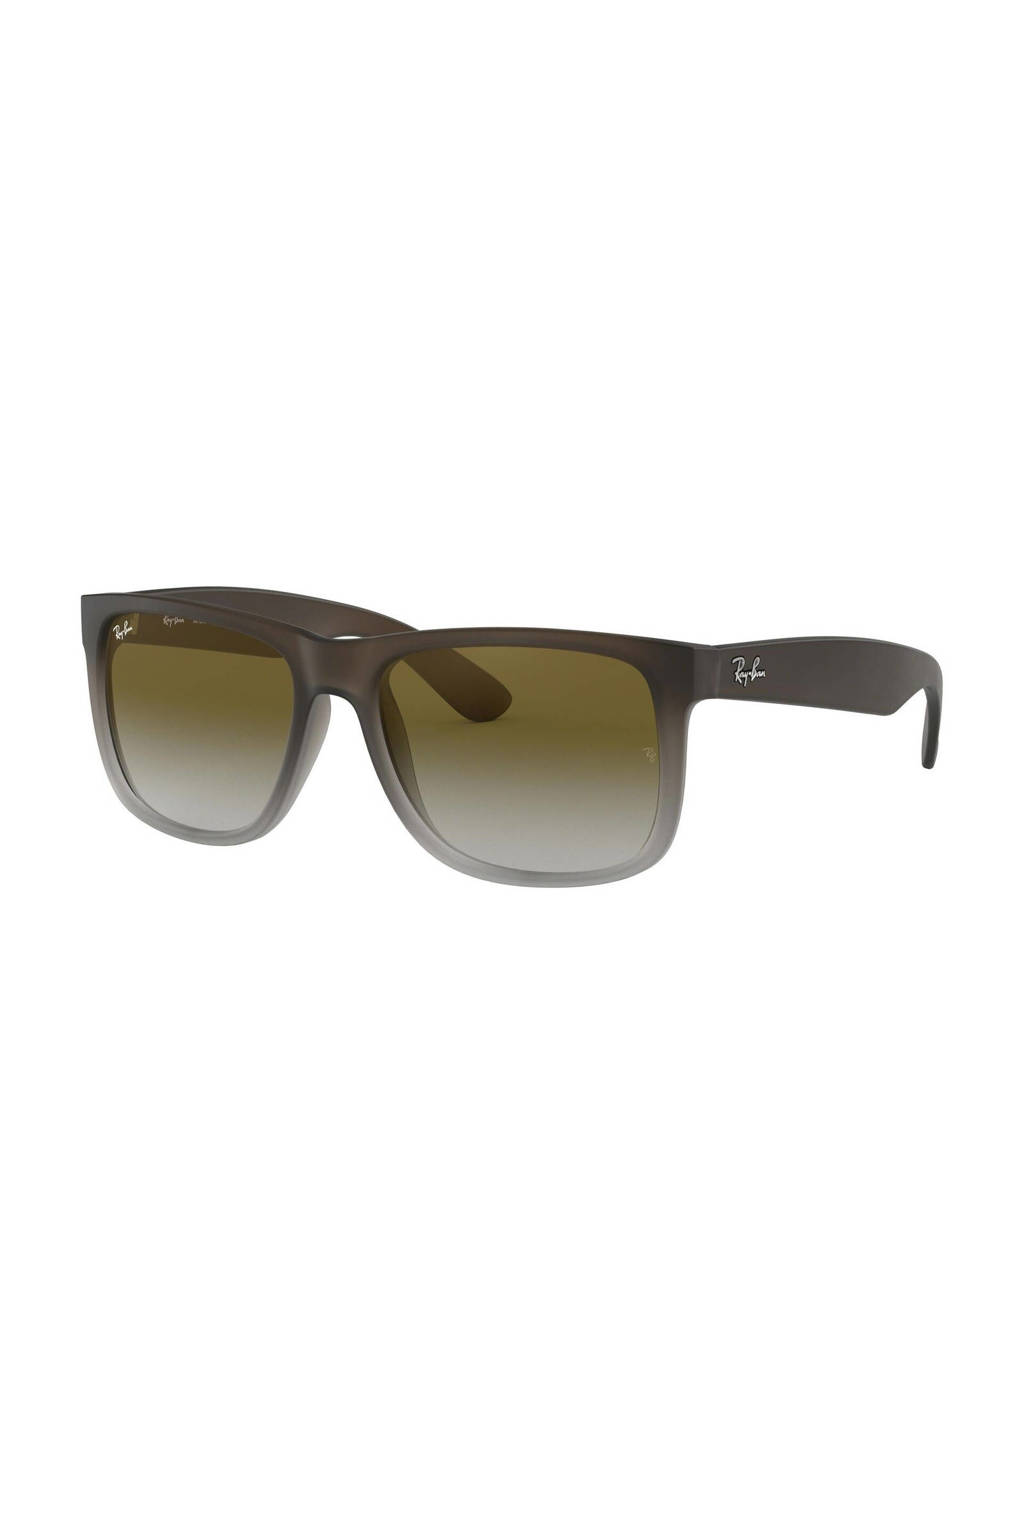 Ray-Ban zonnebril 0RB4165, Groen